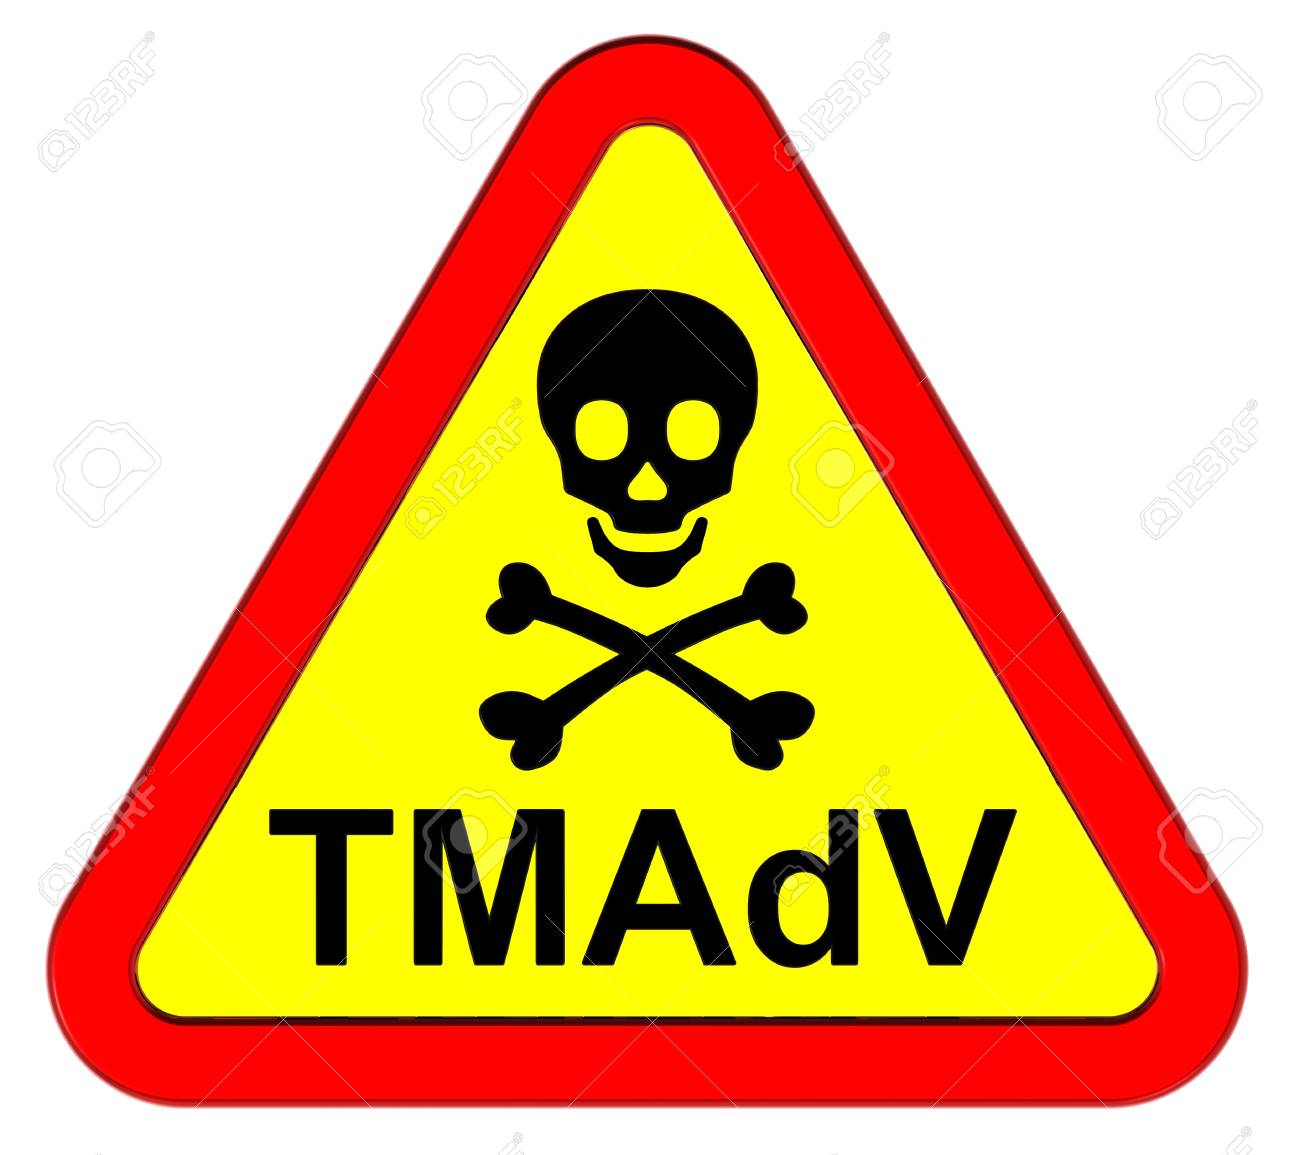 TMAdV - warning sign. Computer generated 3D photo rendering. Stock Photo - 10066144